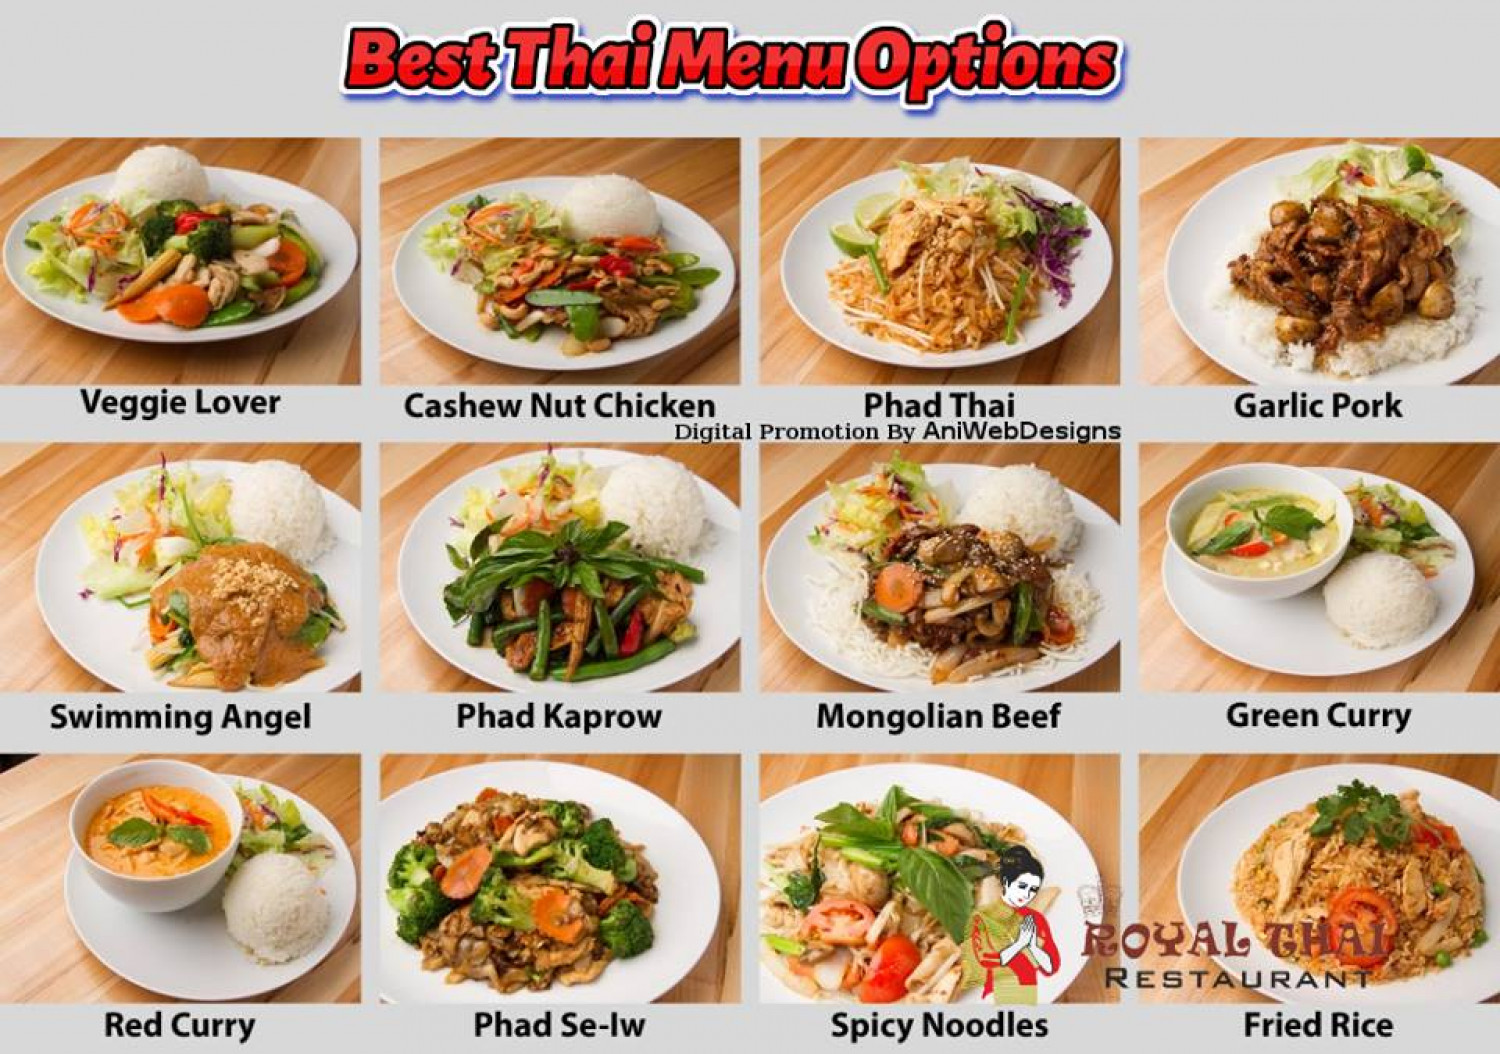 Home Delivery and Catering Services of Thai Restaurant Infographic